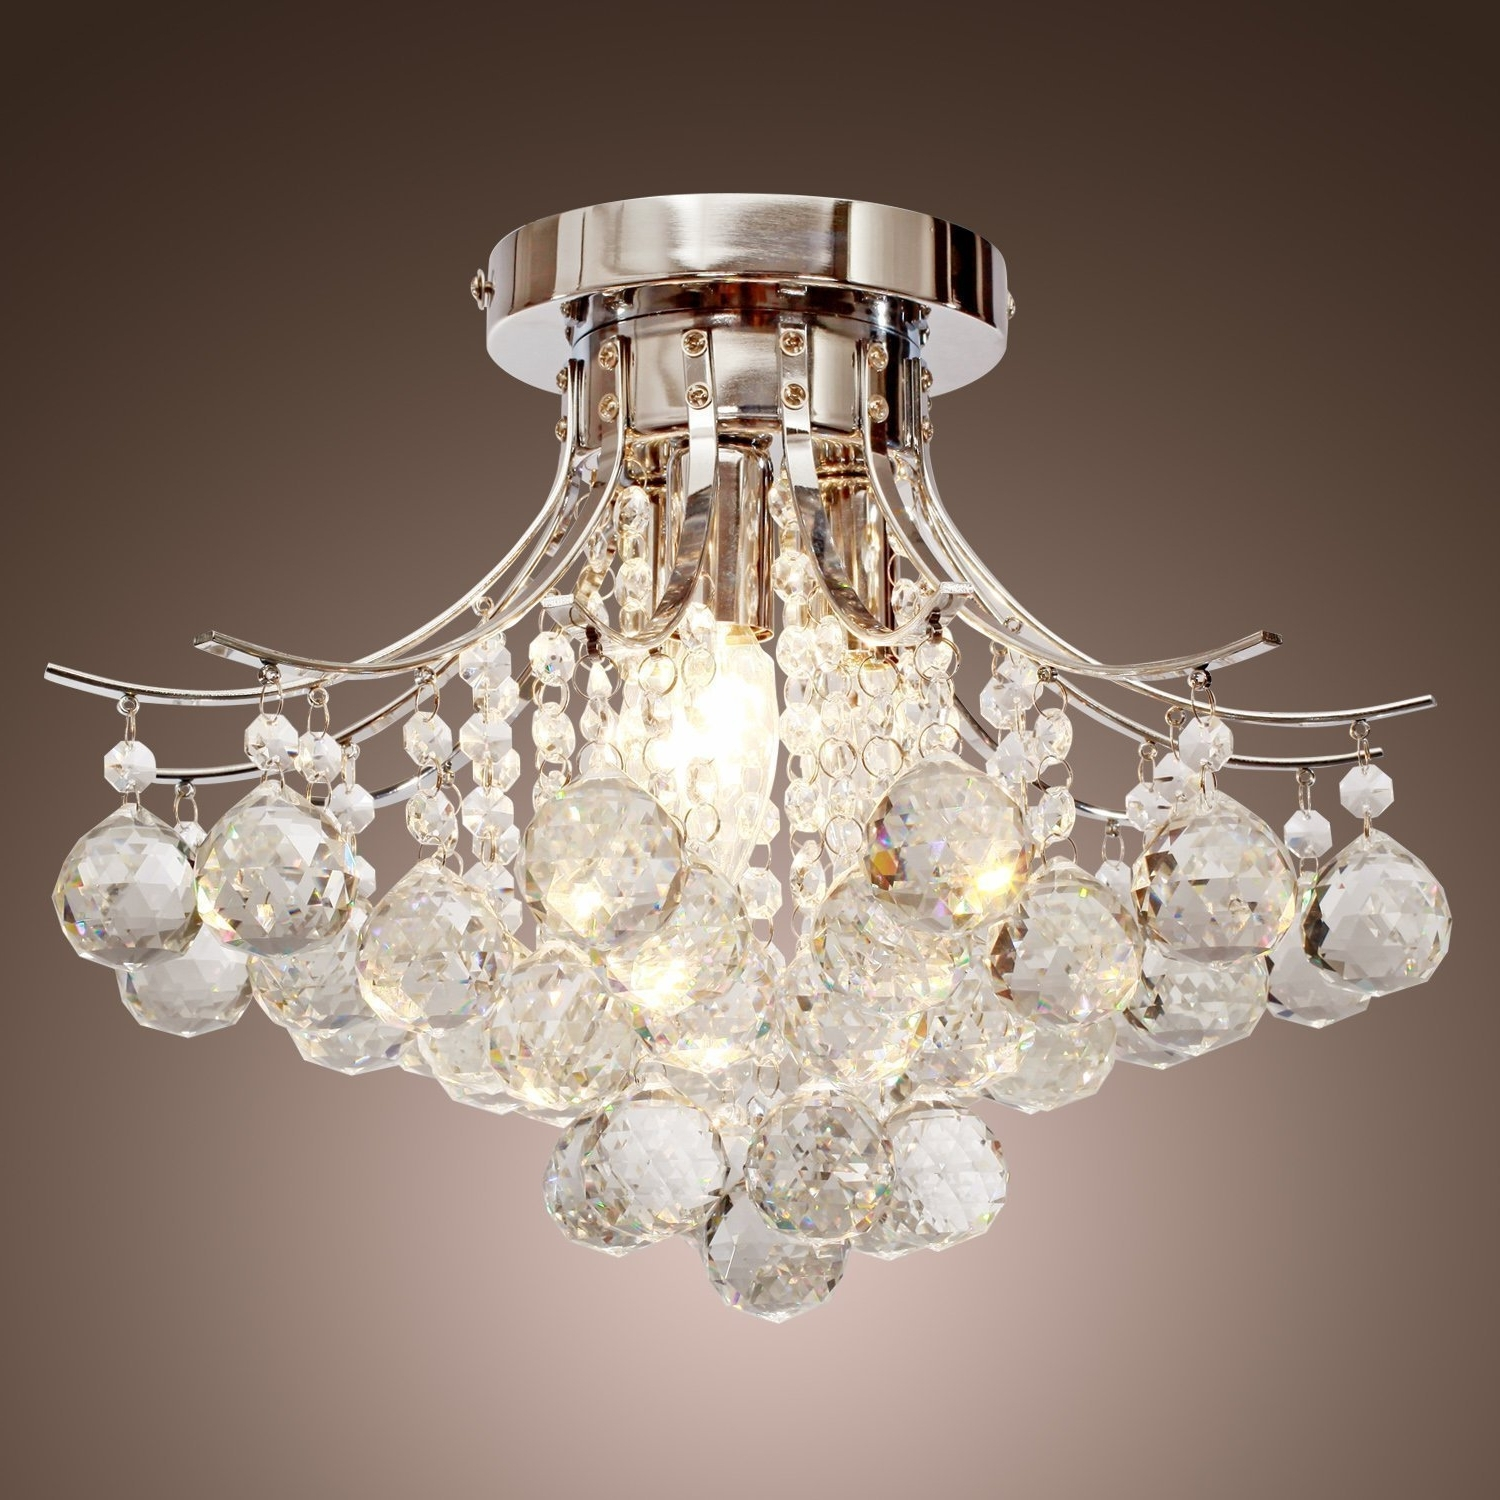 2019 Light : Living Room Ceiling Lights Close To Flush Mount Lighting With Low Ceiling Chandelier (View 6 of 20)